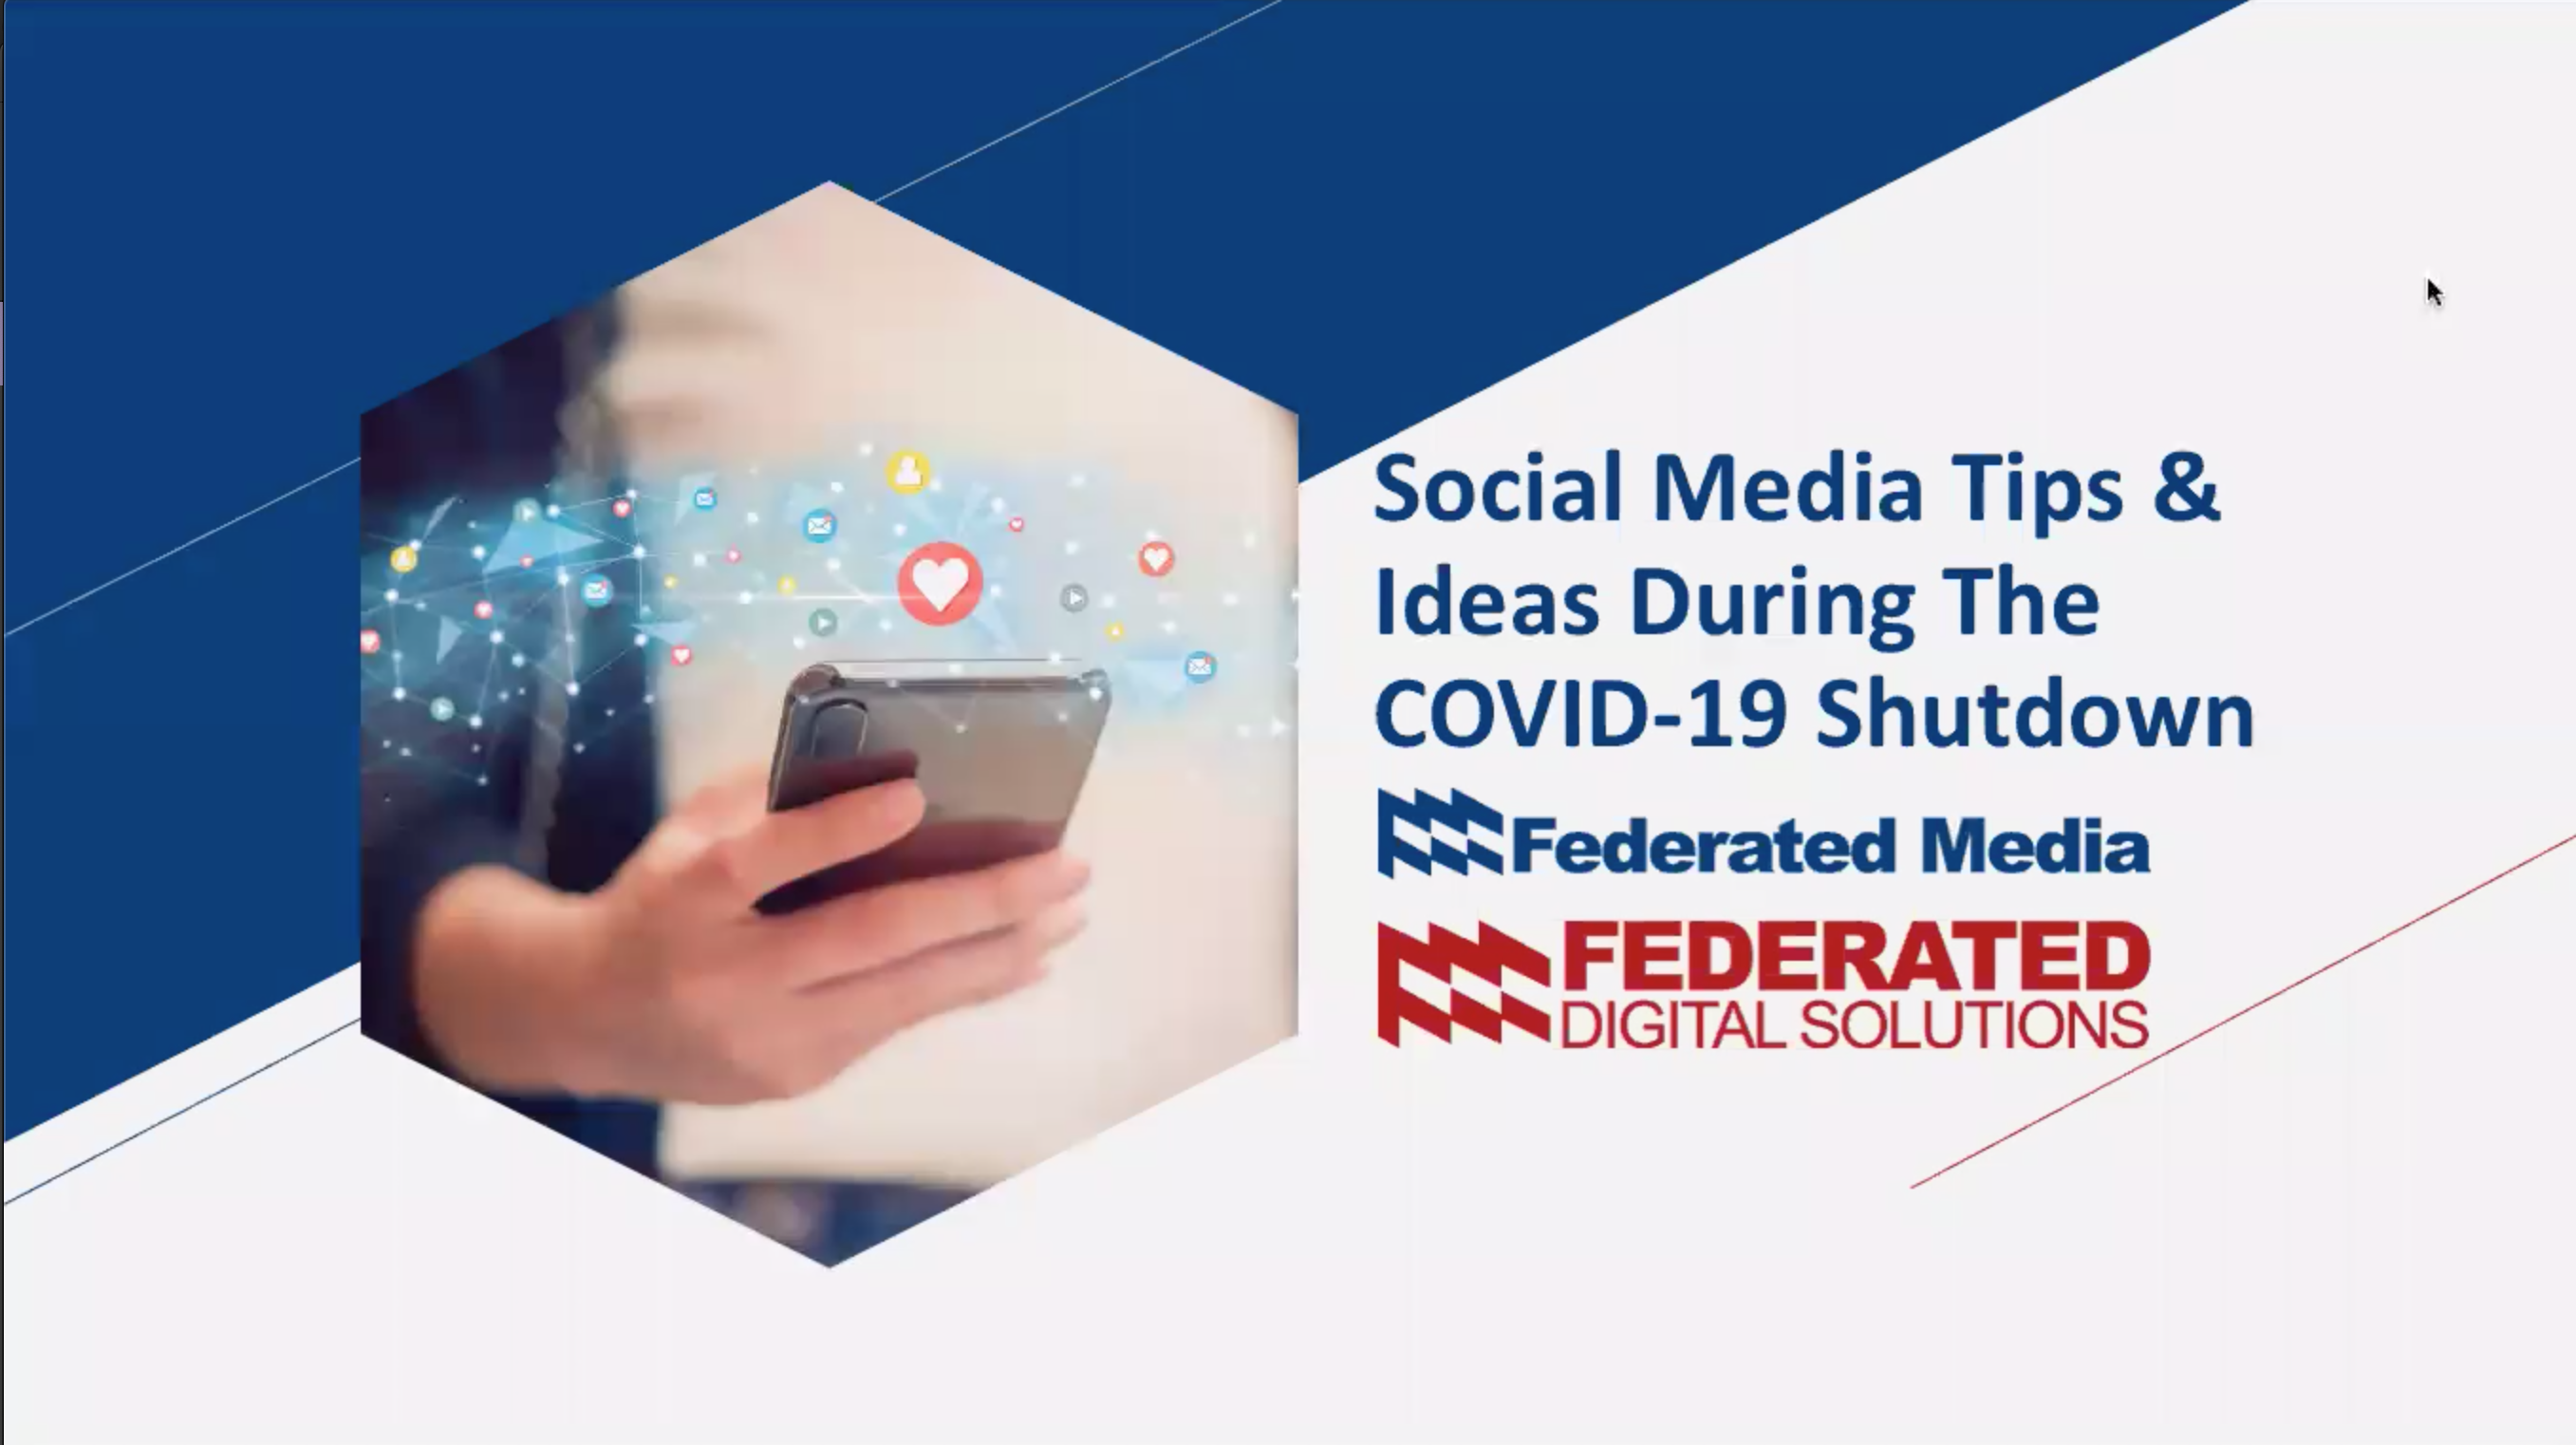 Social Media Tips & Ideas During The COVI-19 Shutdown